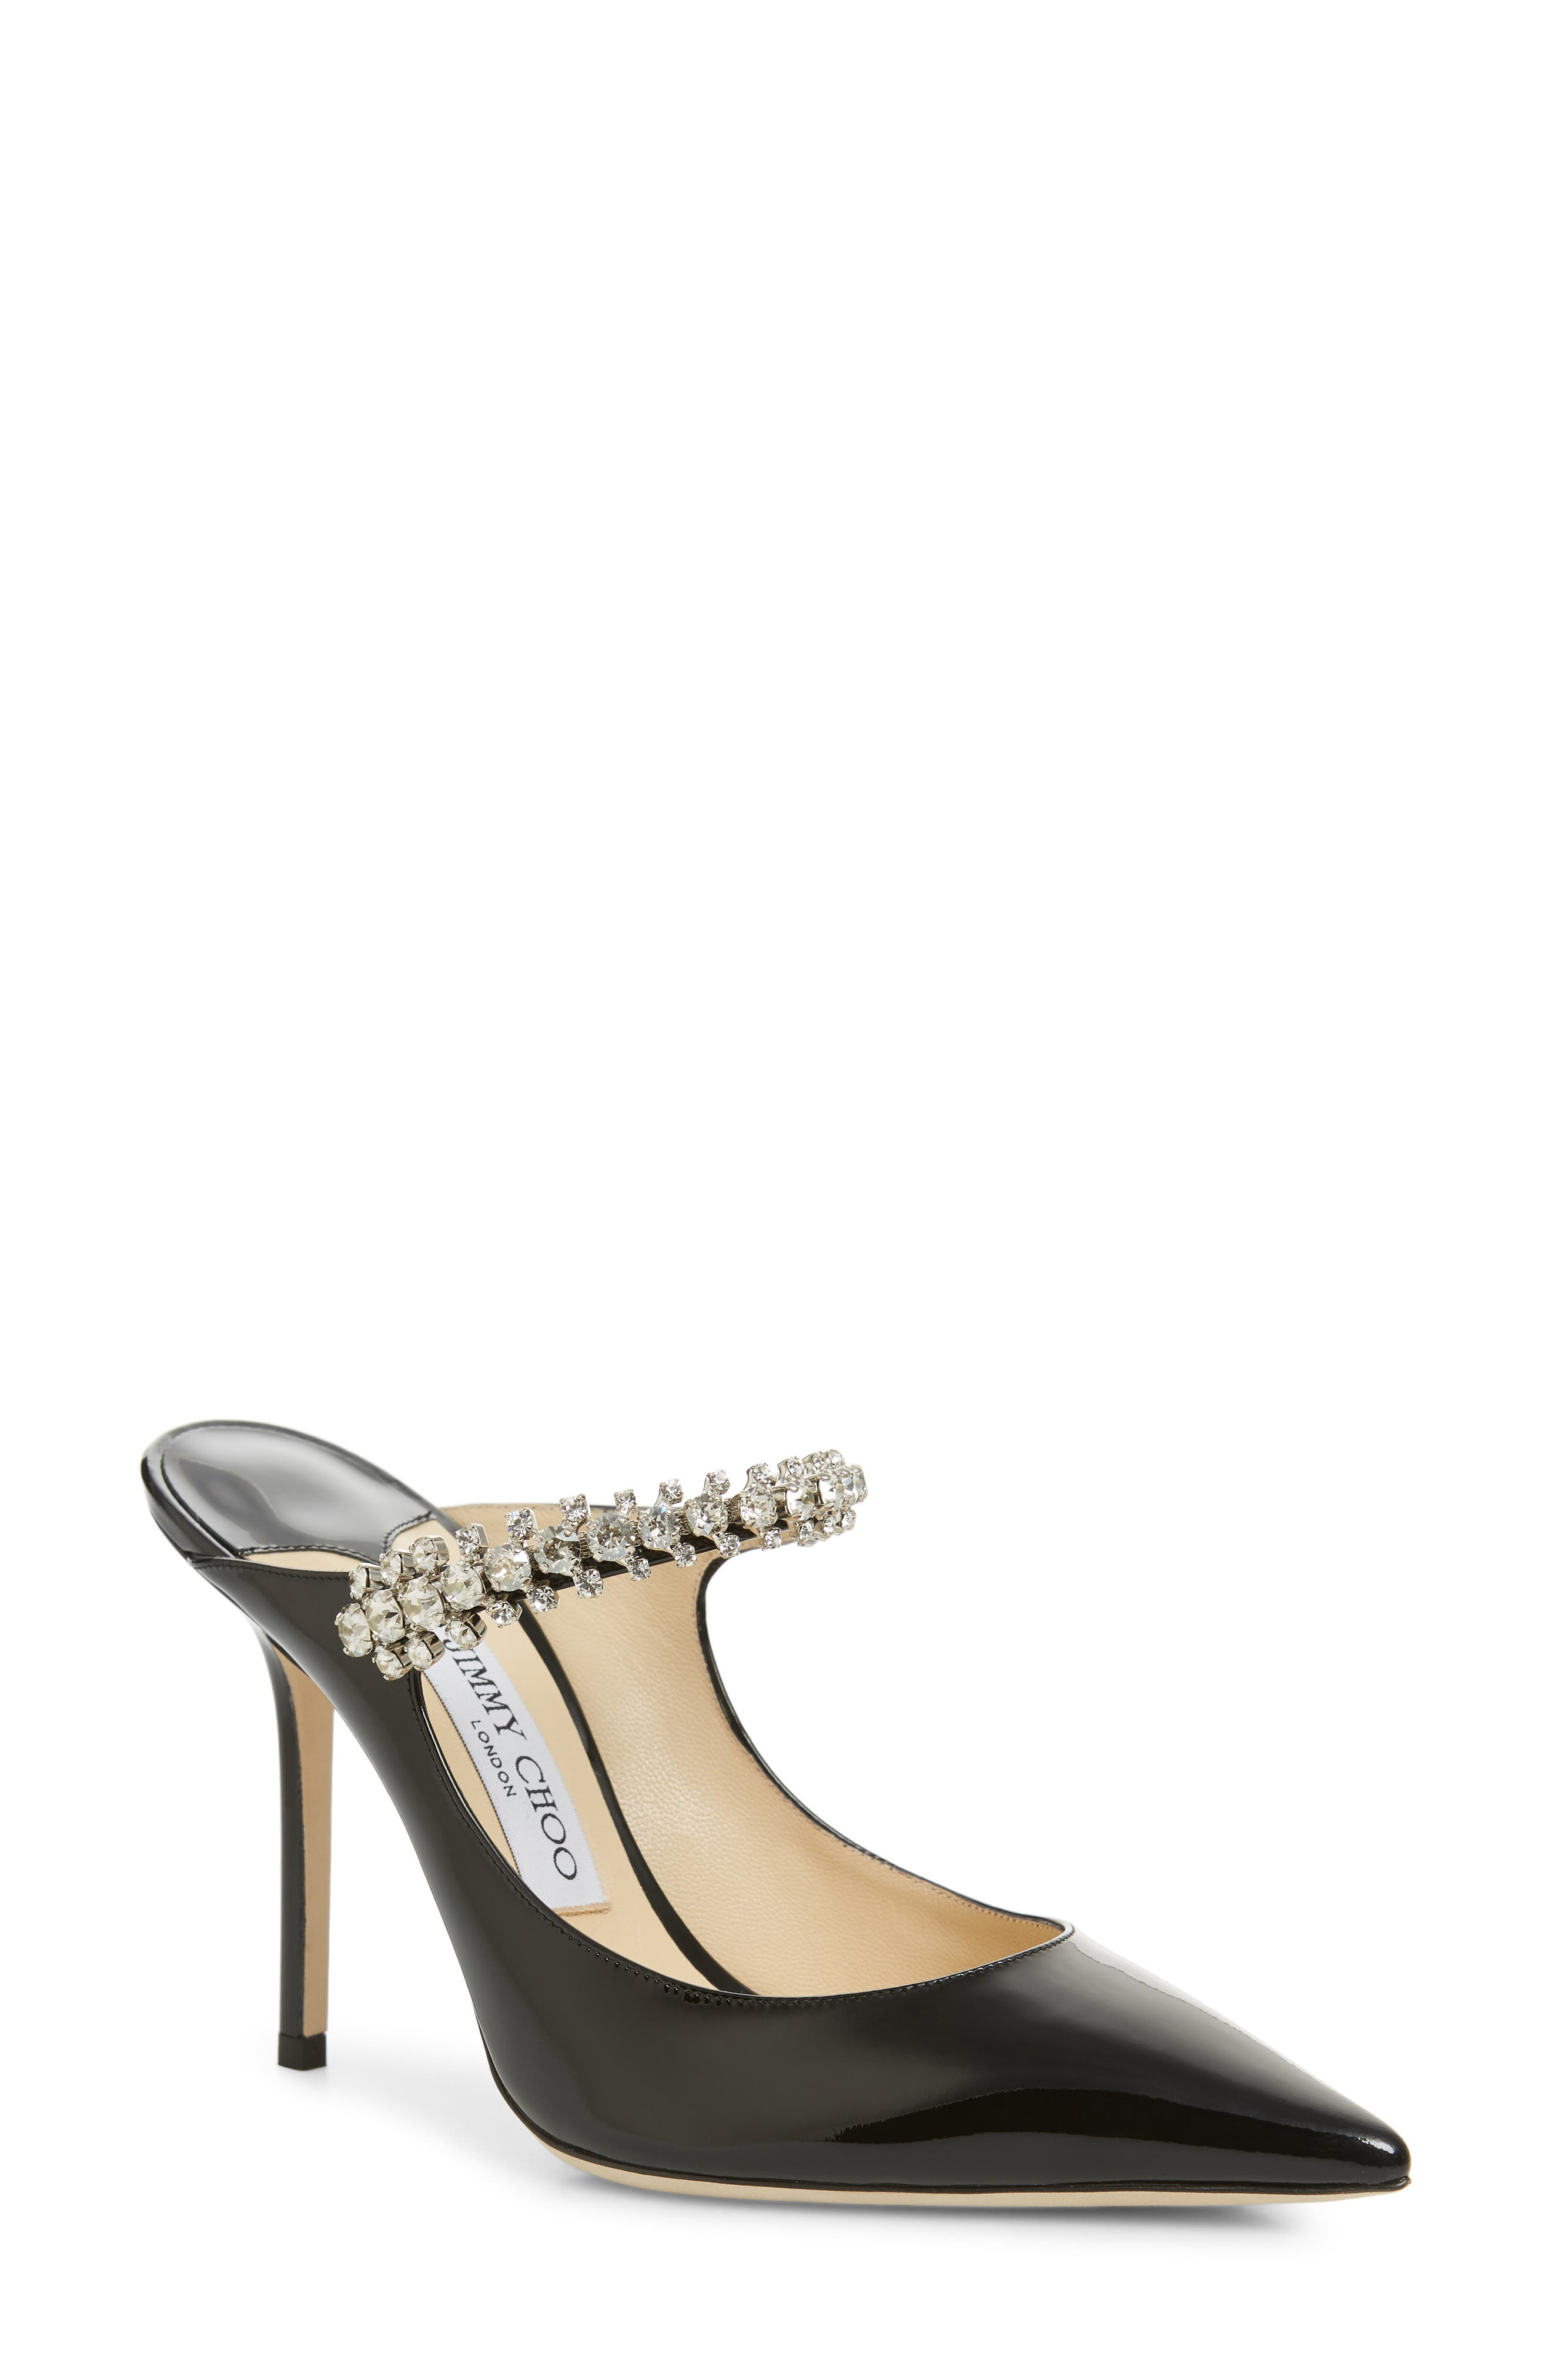 JIMMY CHOO, Embellished Mule, Main thumbnail 1, color, BLACK